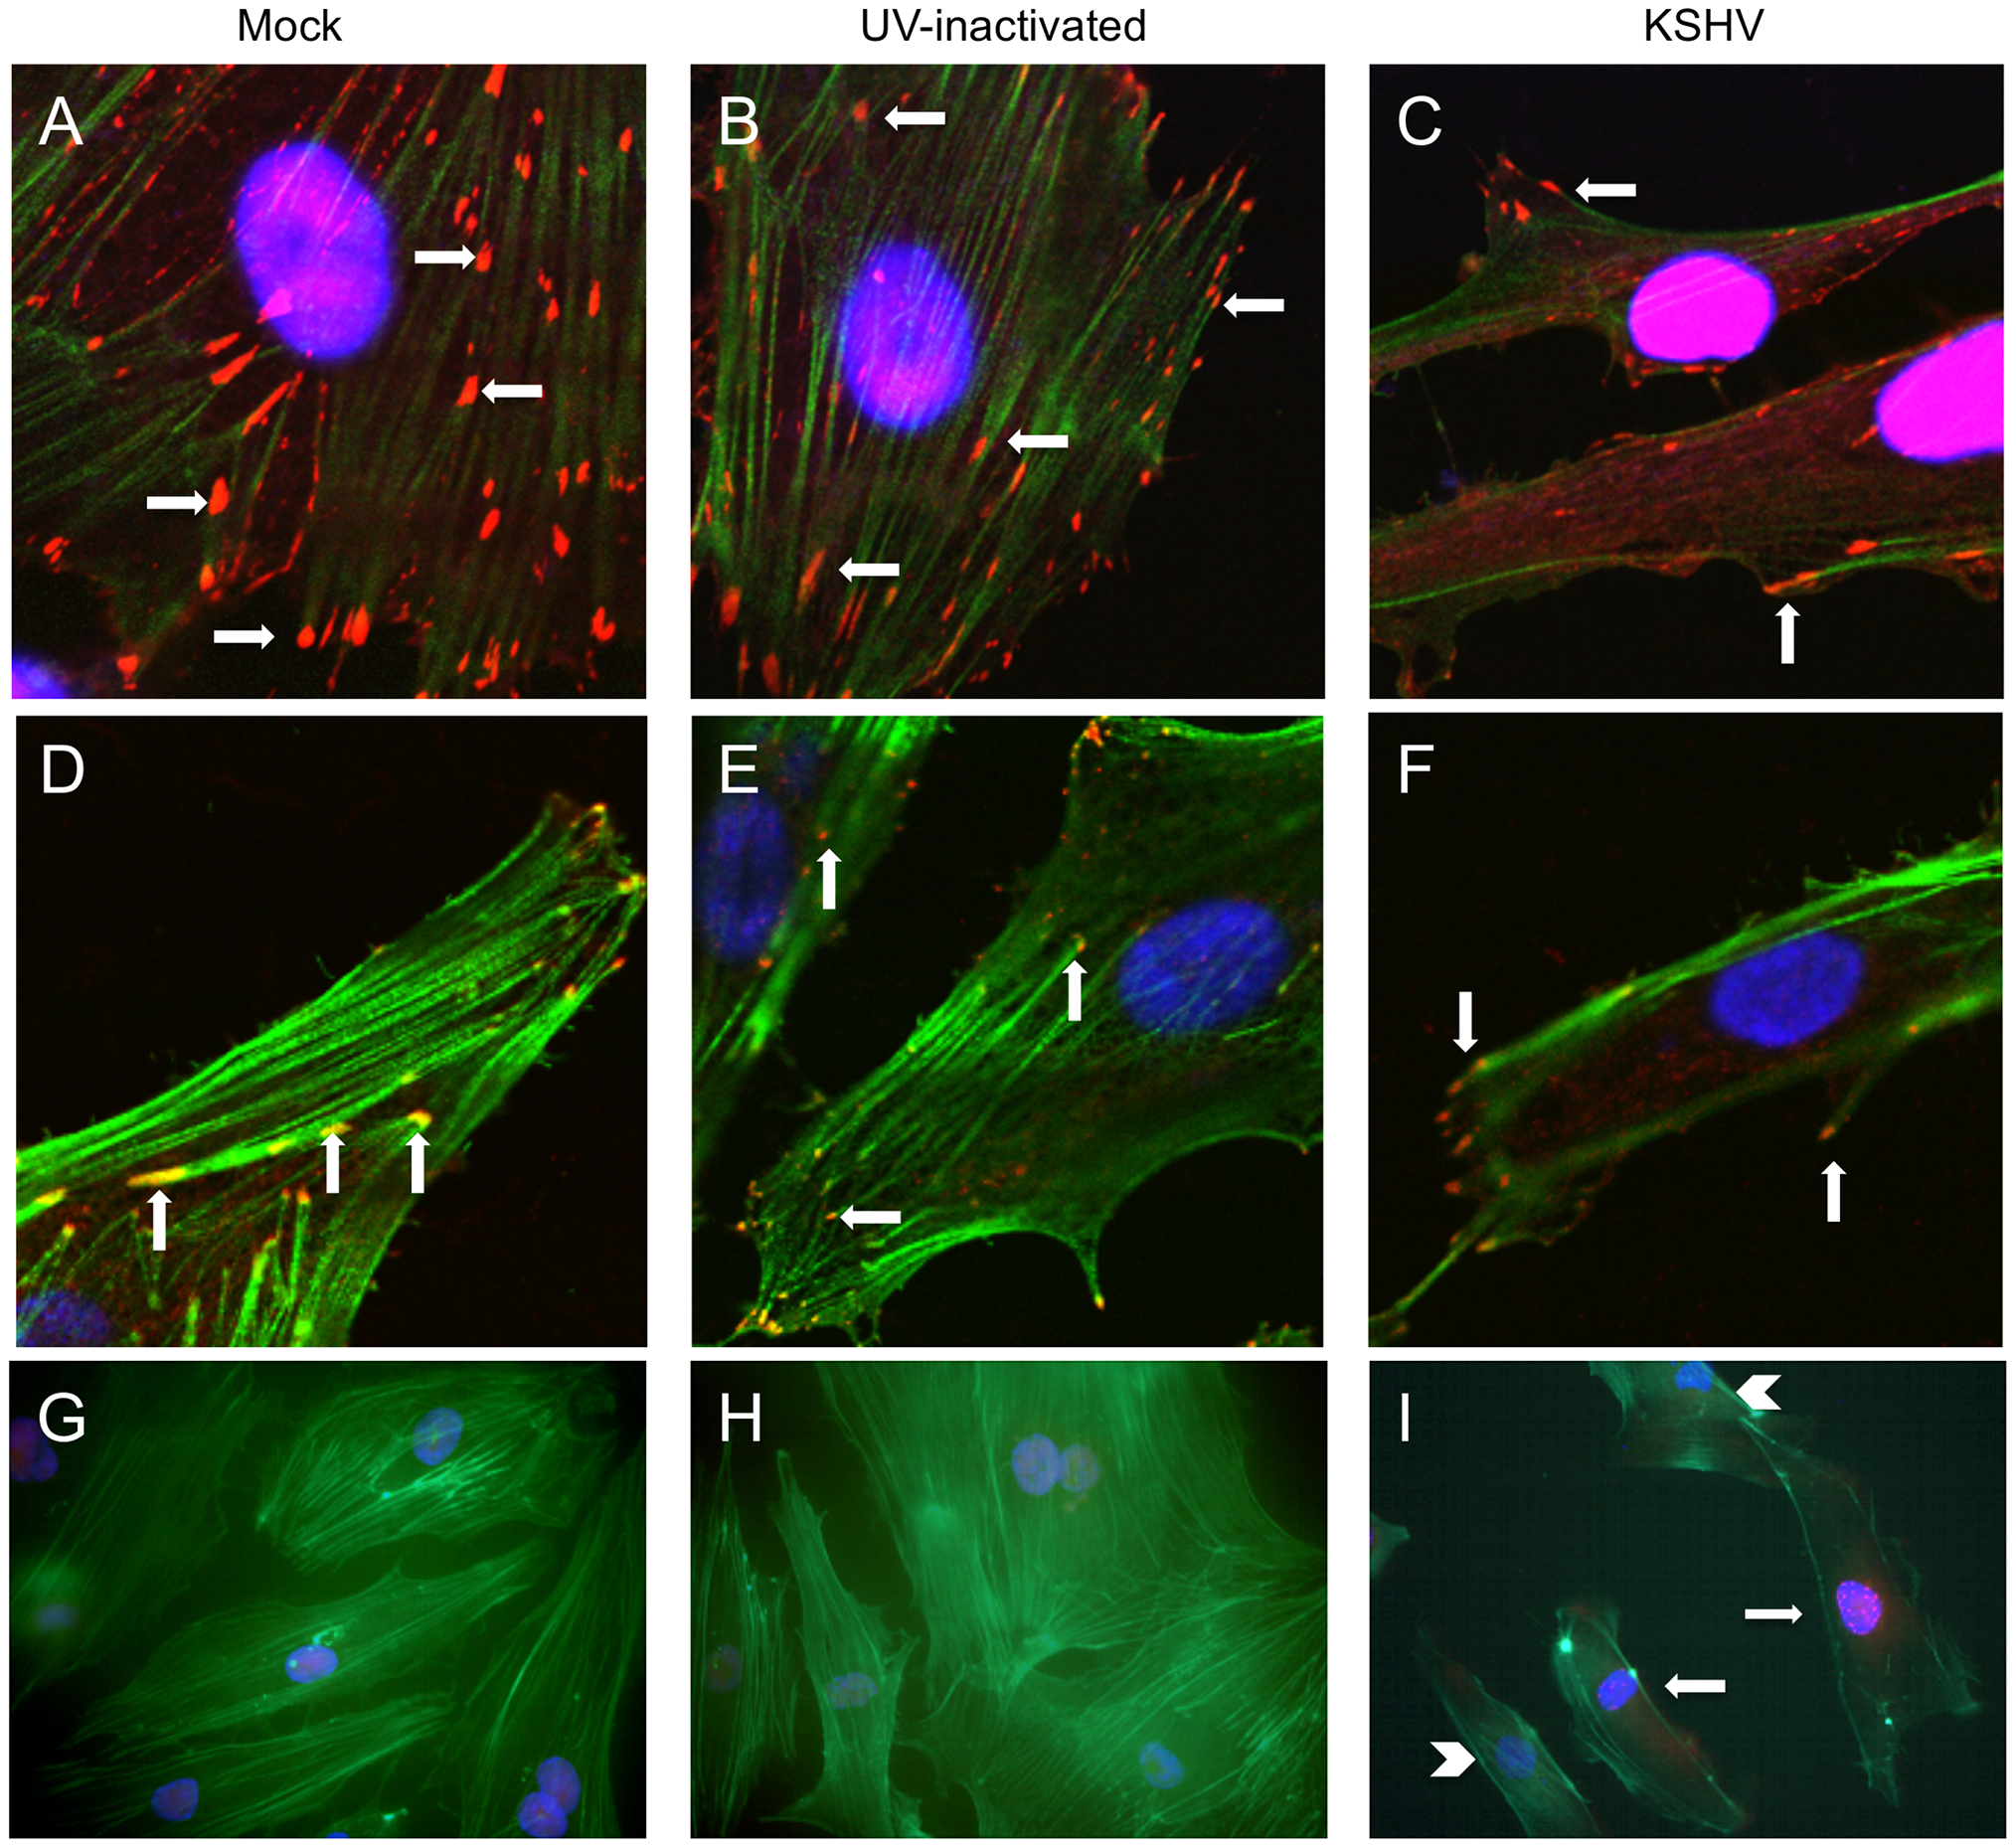 KSHV latent infection promotes turnover of focal adhesions and relocalization of integrin β3.